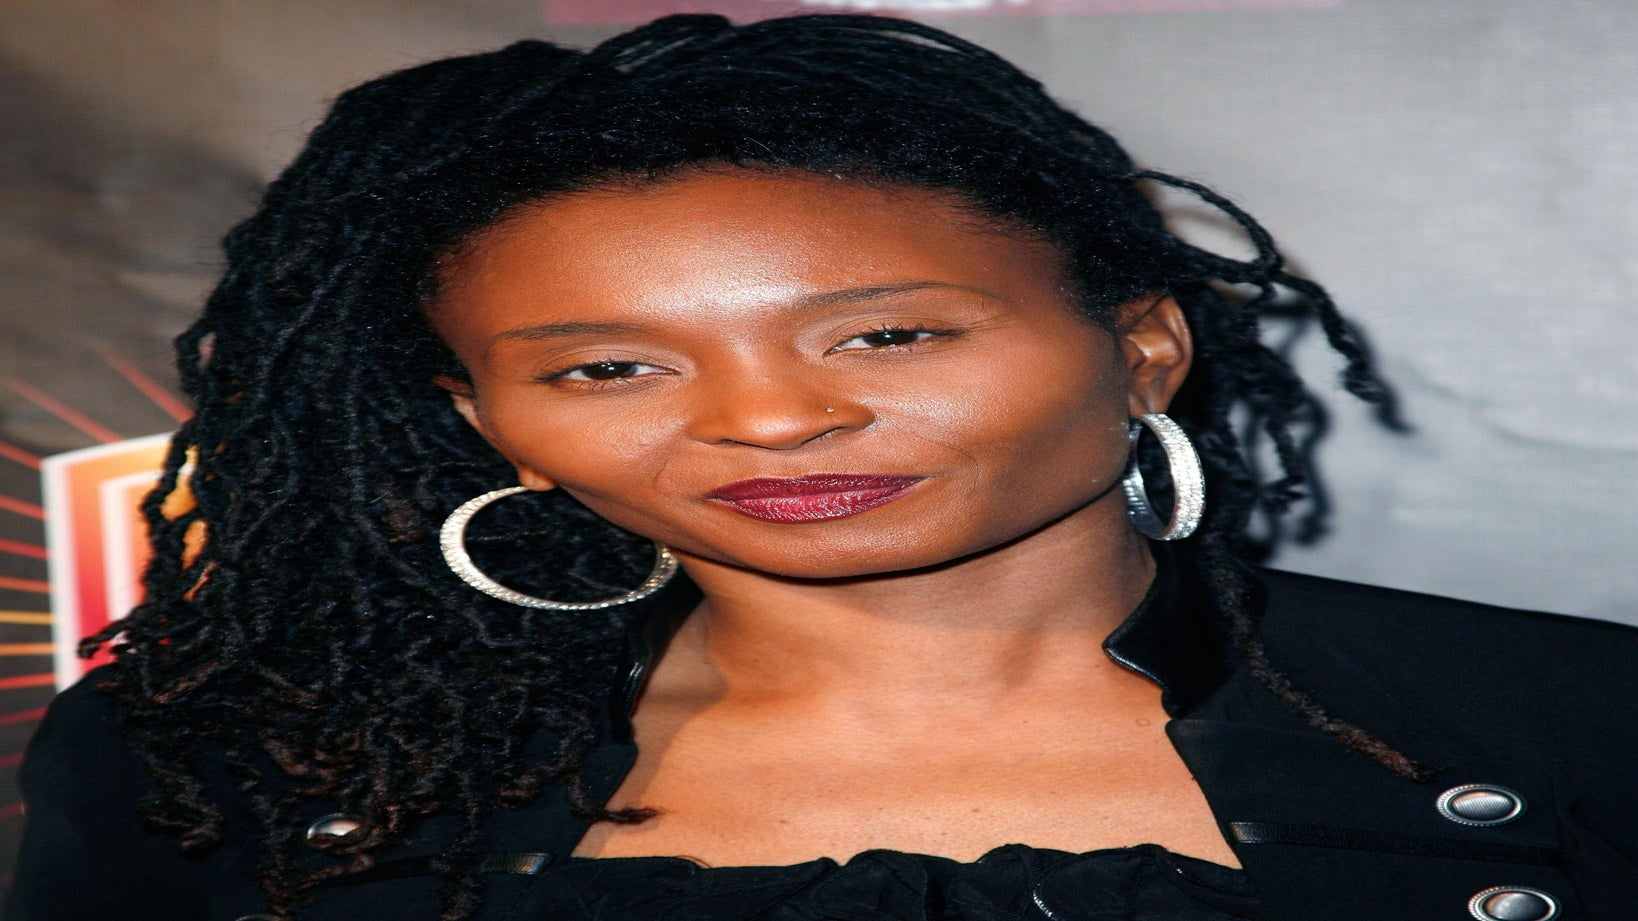 Pioneering Hip Hop Journalist Dee Barnes Launches GoFundMe After Revealing Homelessness